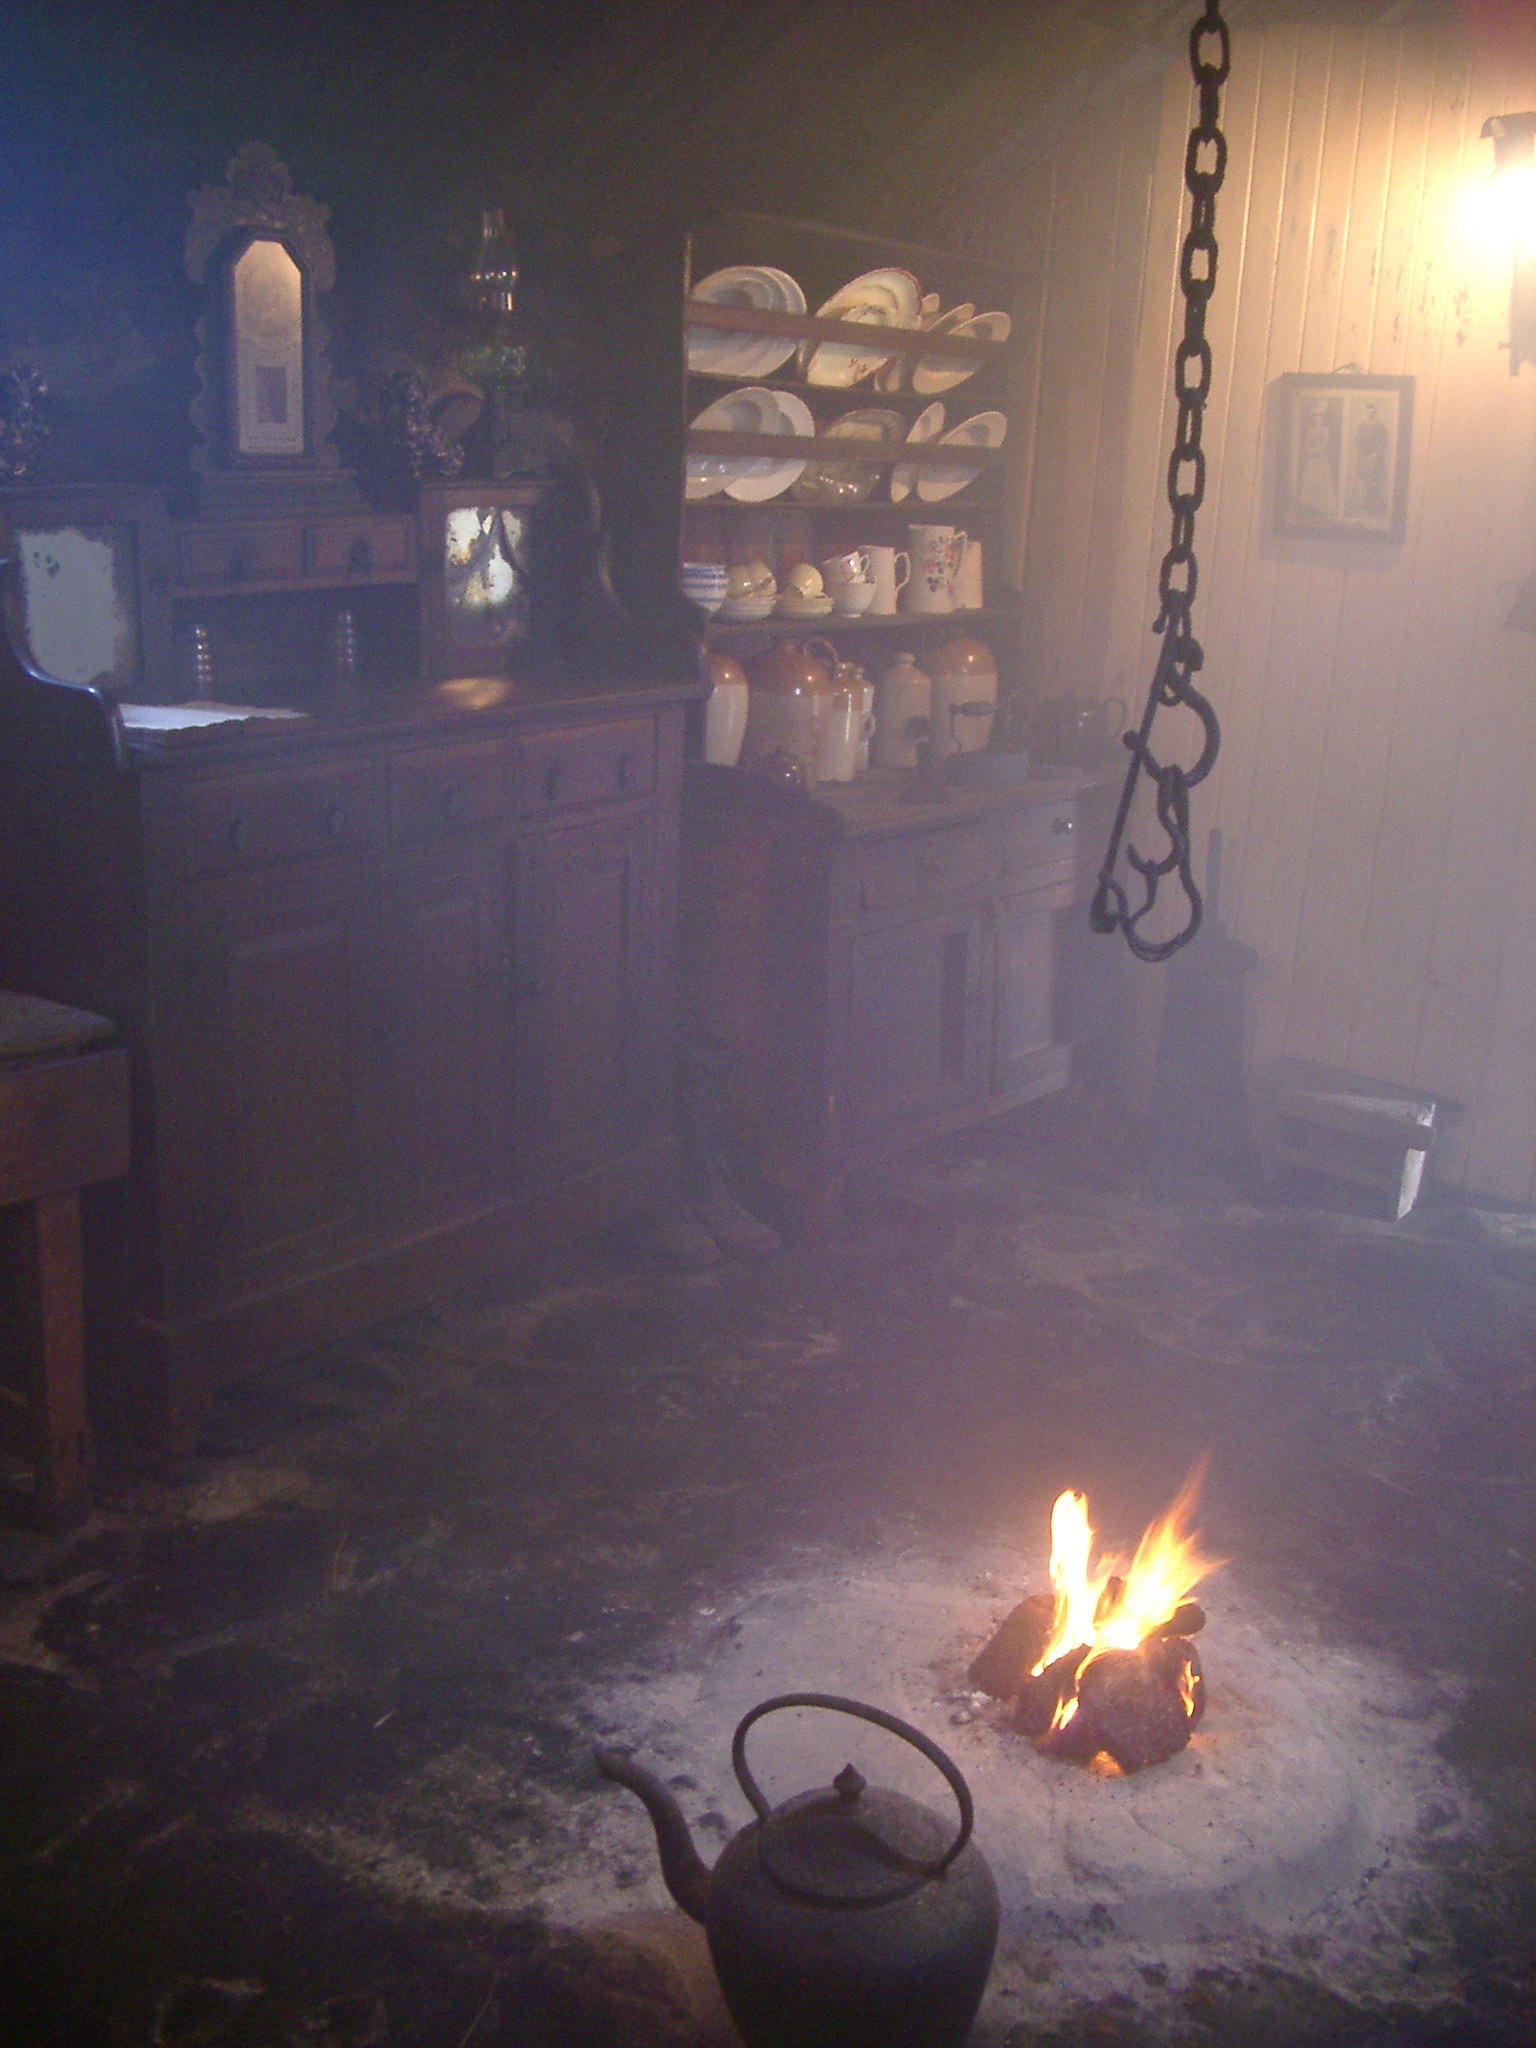 smoky dark interior of a blackhouse, a historic traditional scotts highland dwelling without glass windows